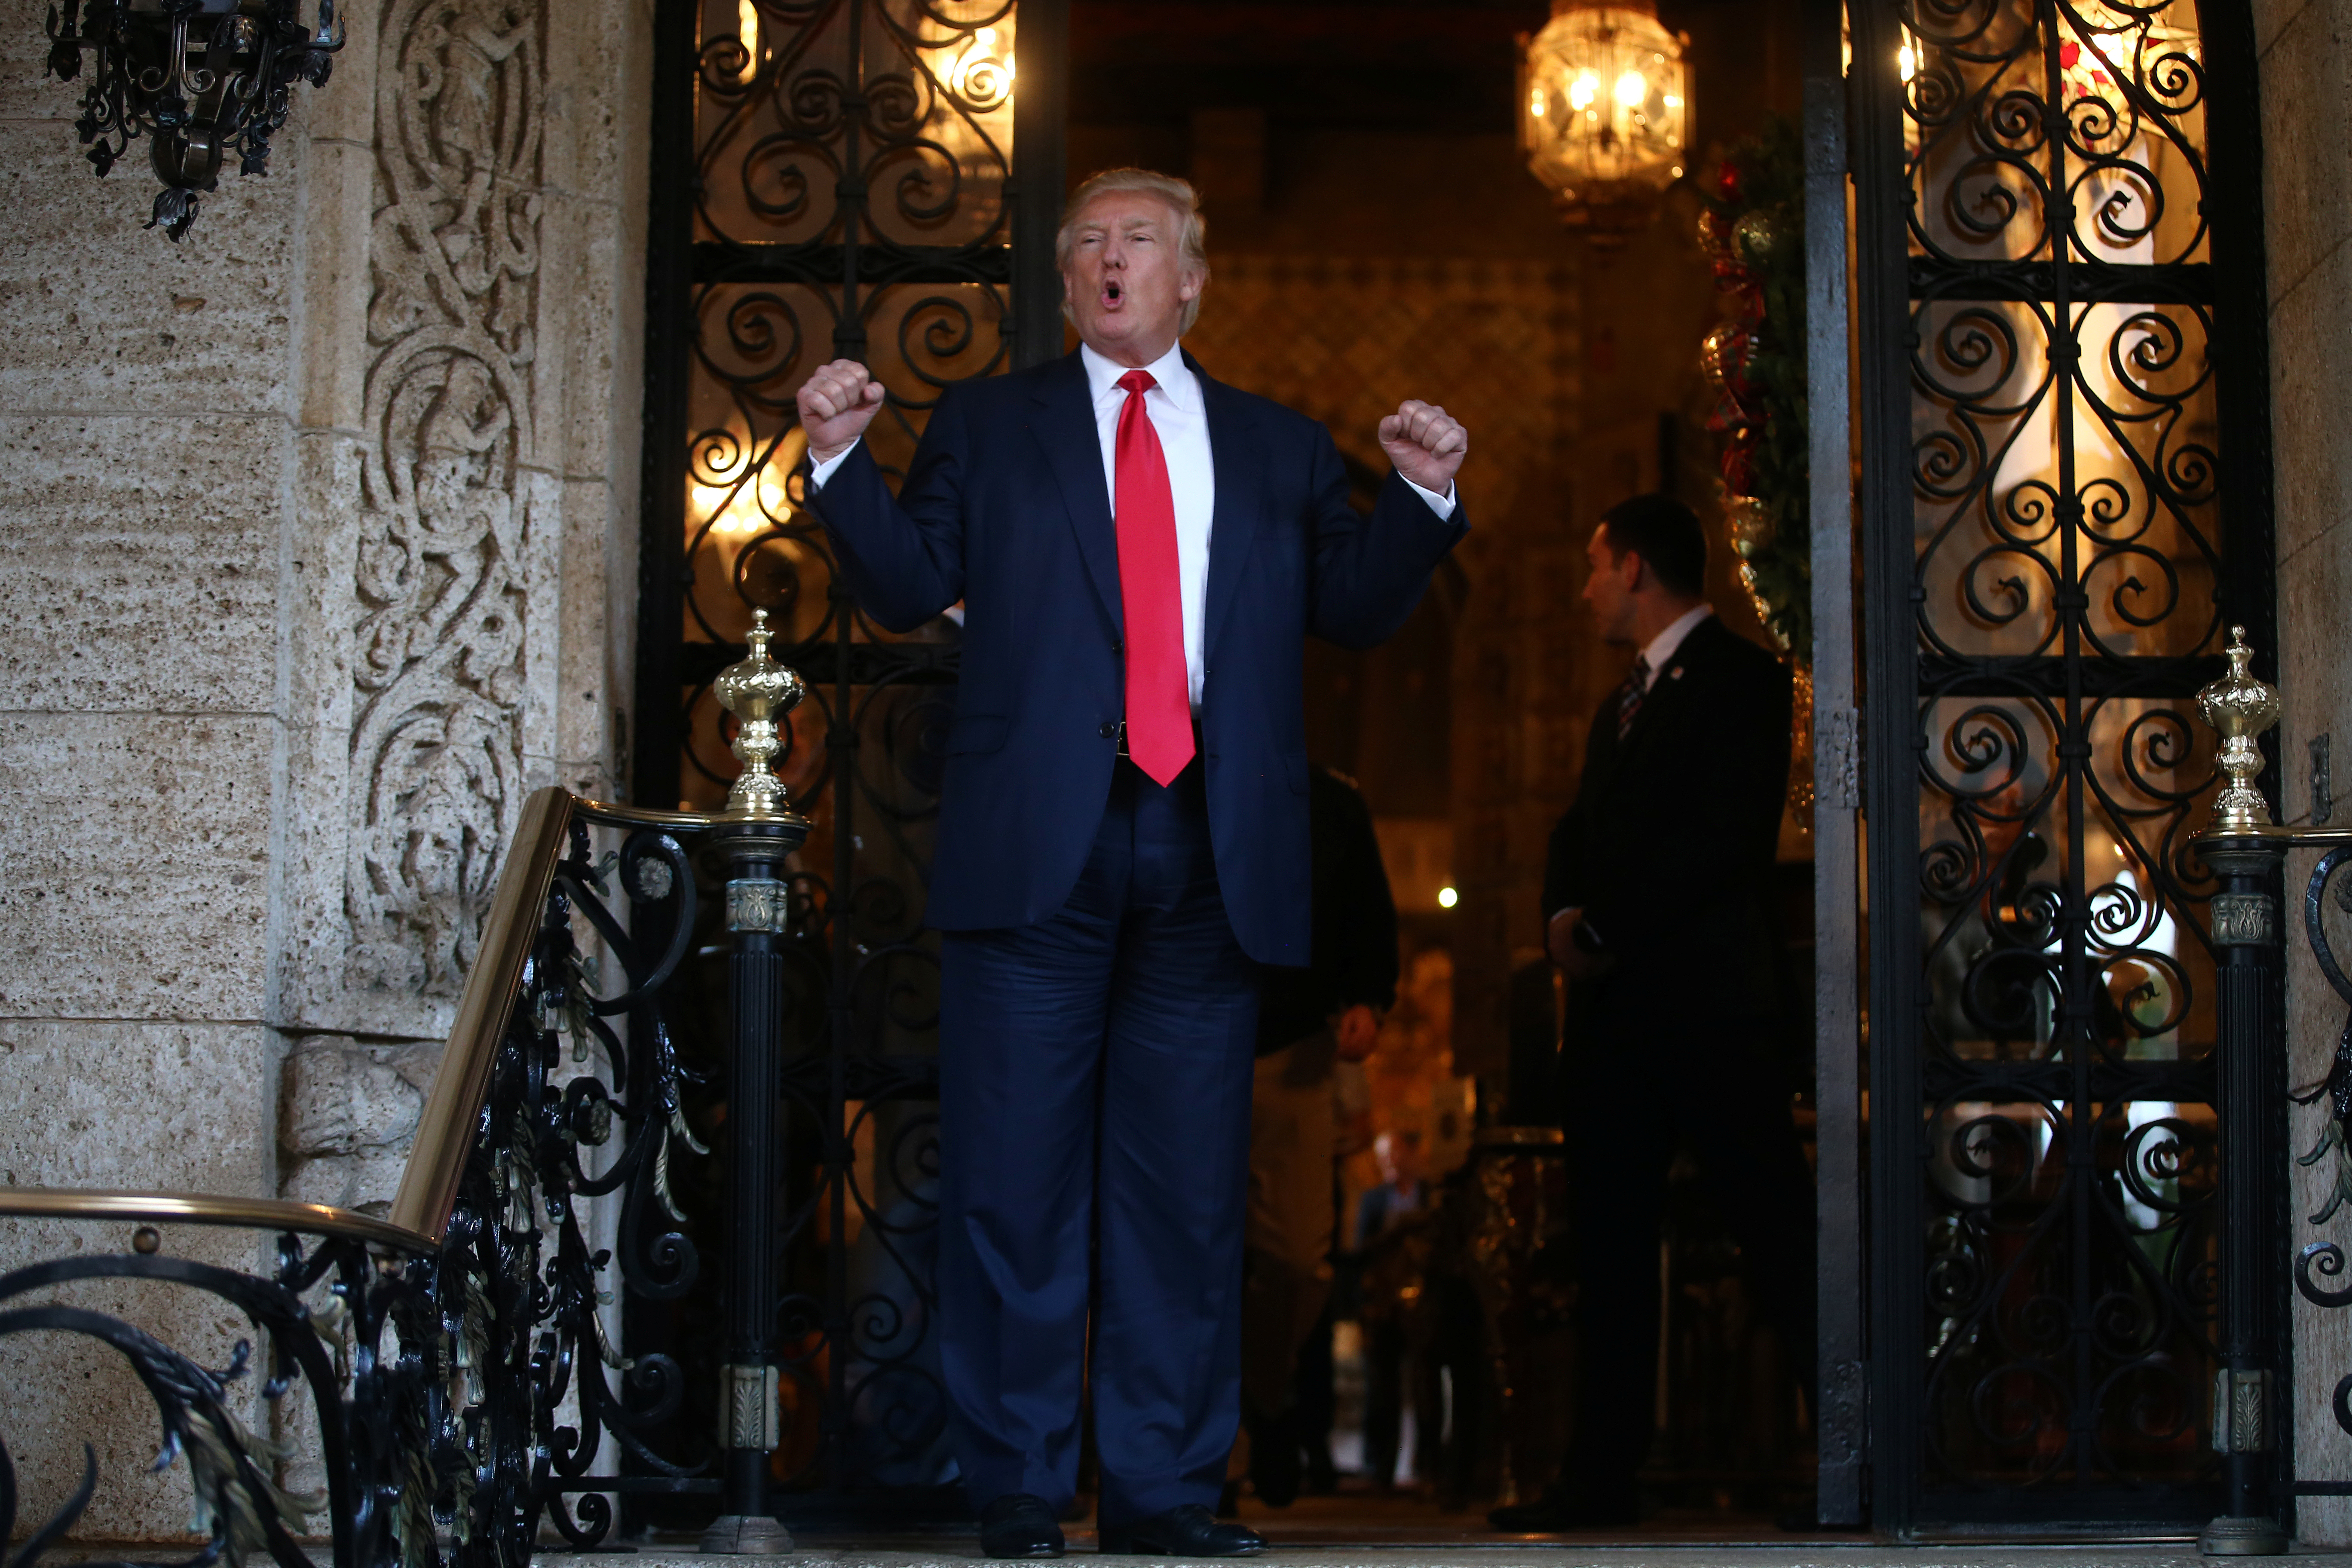 DATE IMPORTED:December 21, 2016U.S. President-elect Donald Trump talks to members of the media after a meeting meeting with Pentagon officials at Mar-a-Lago estate in Palm Beach, Florida, U.S., December 21, 2016. REUTERS/Carlos Barria